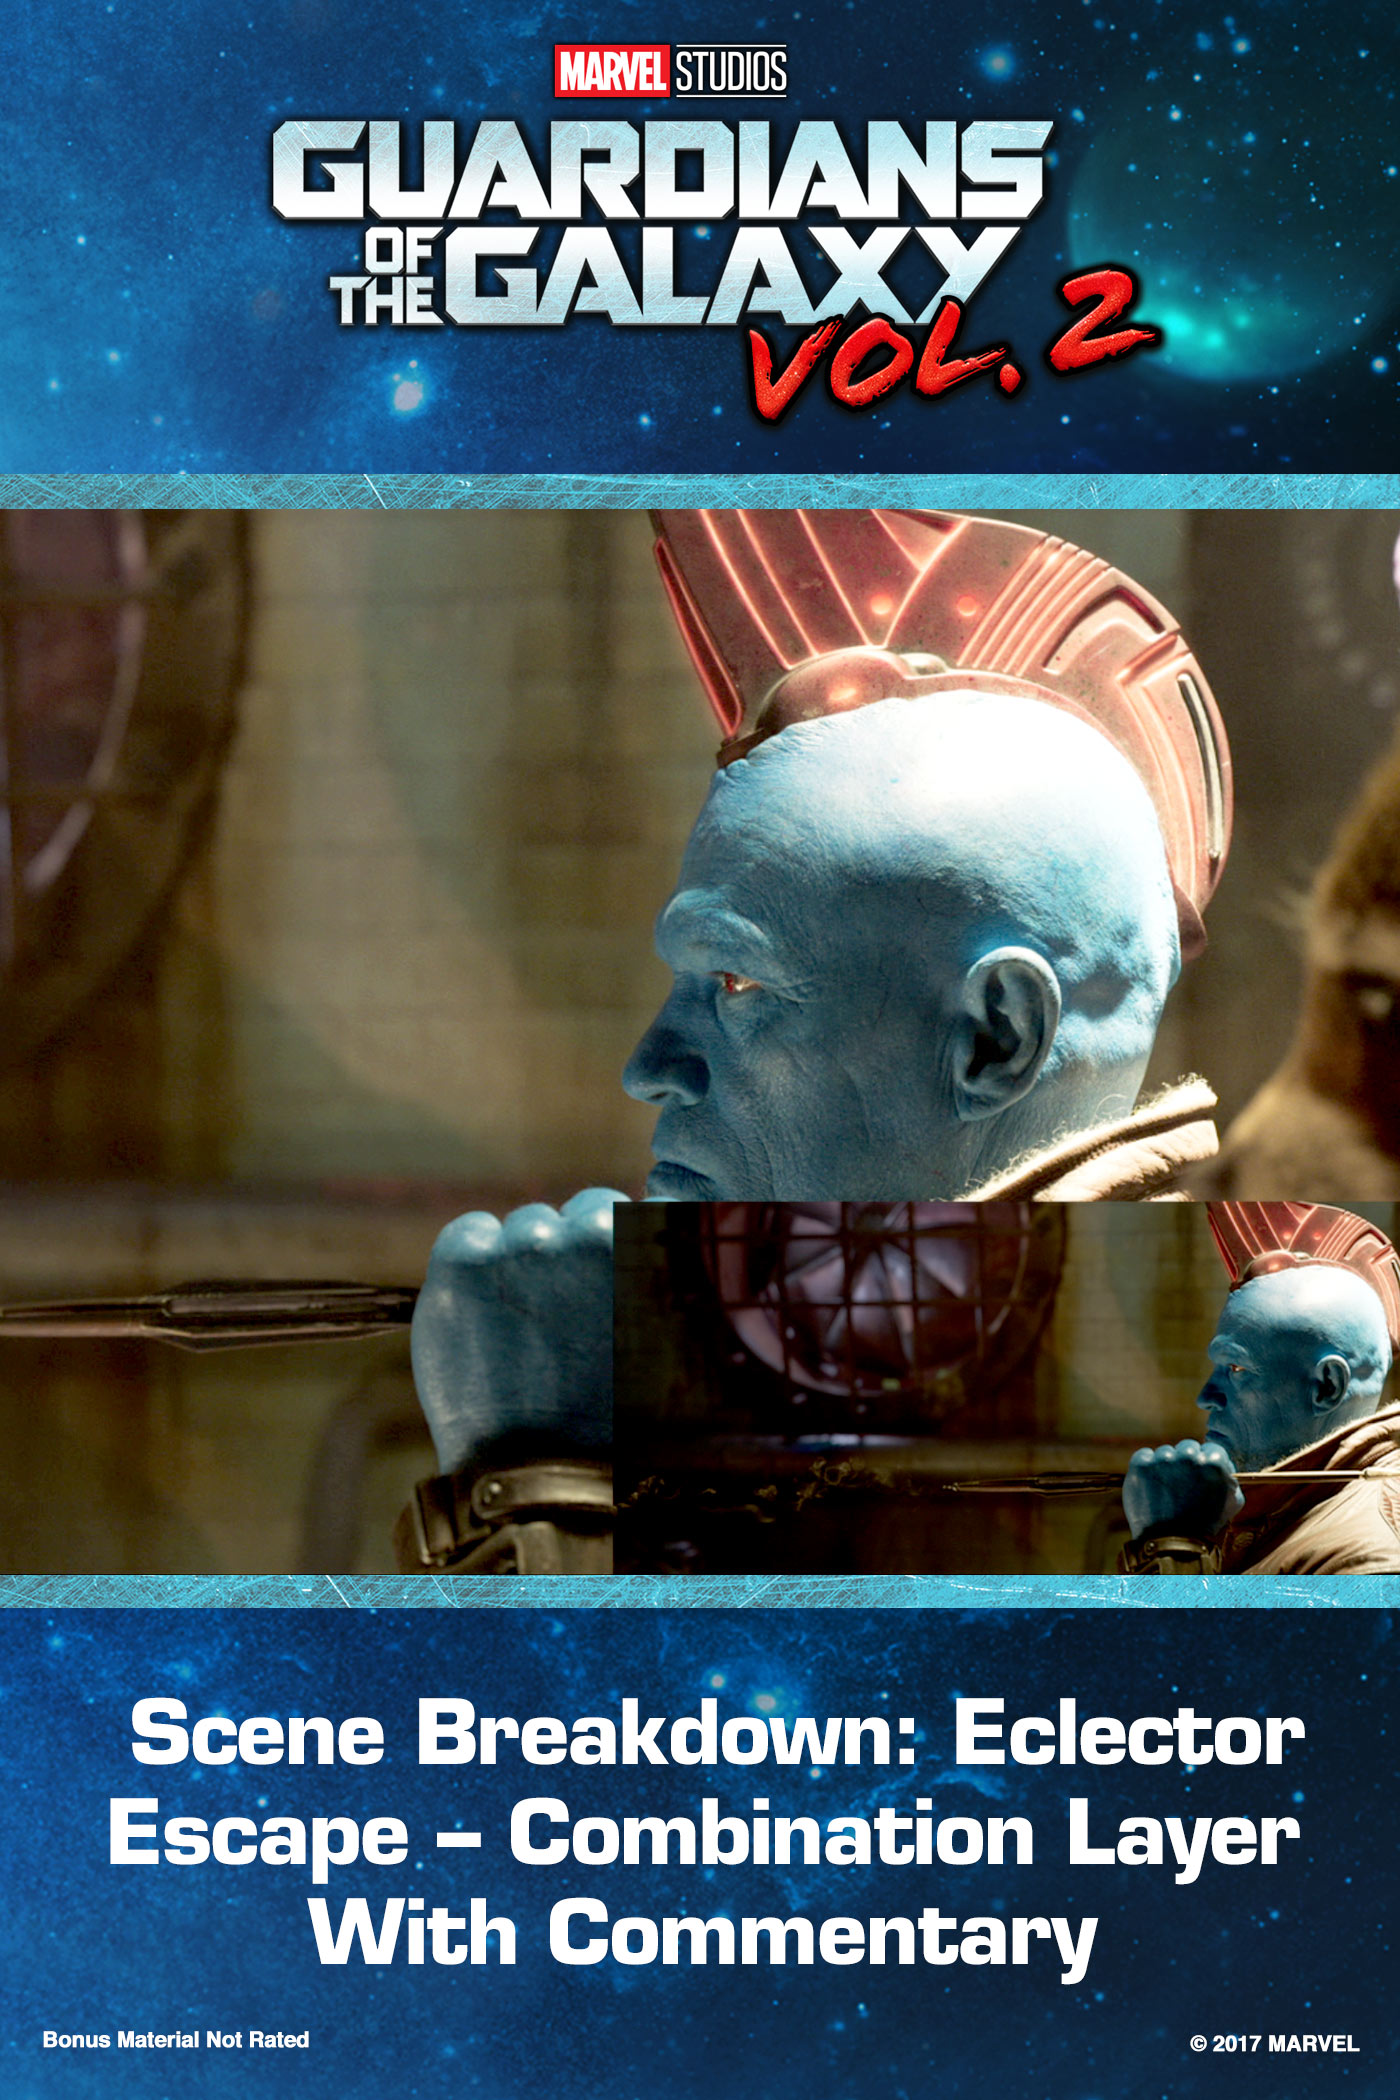 Scene Breakdown: Eclector Escape – Combination Layer With Commentary